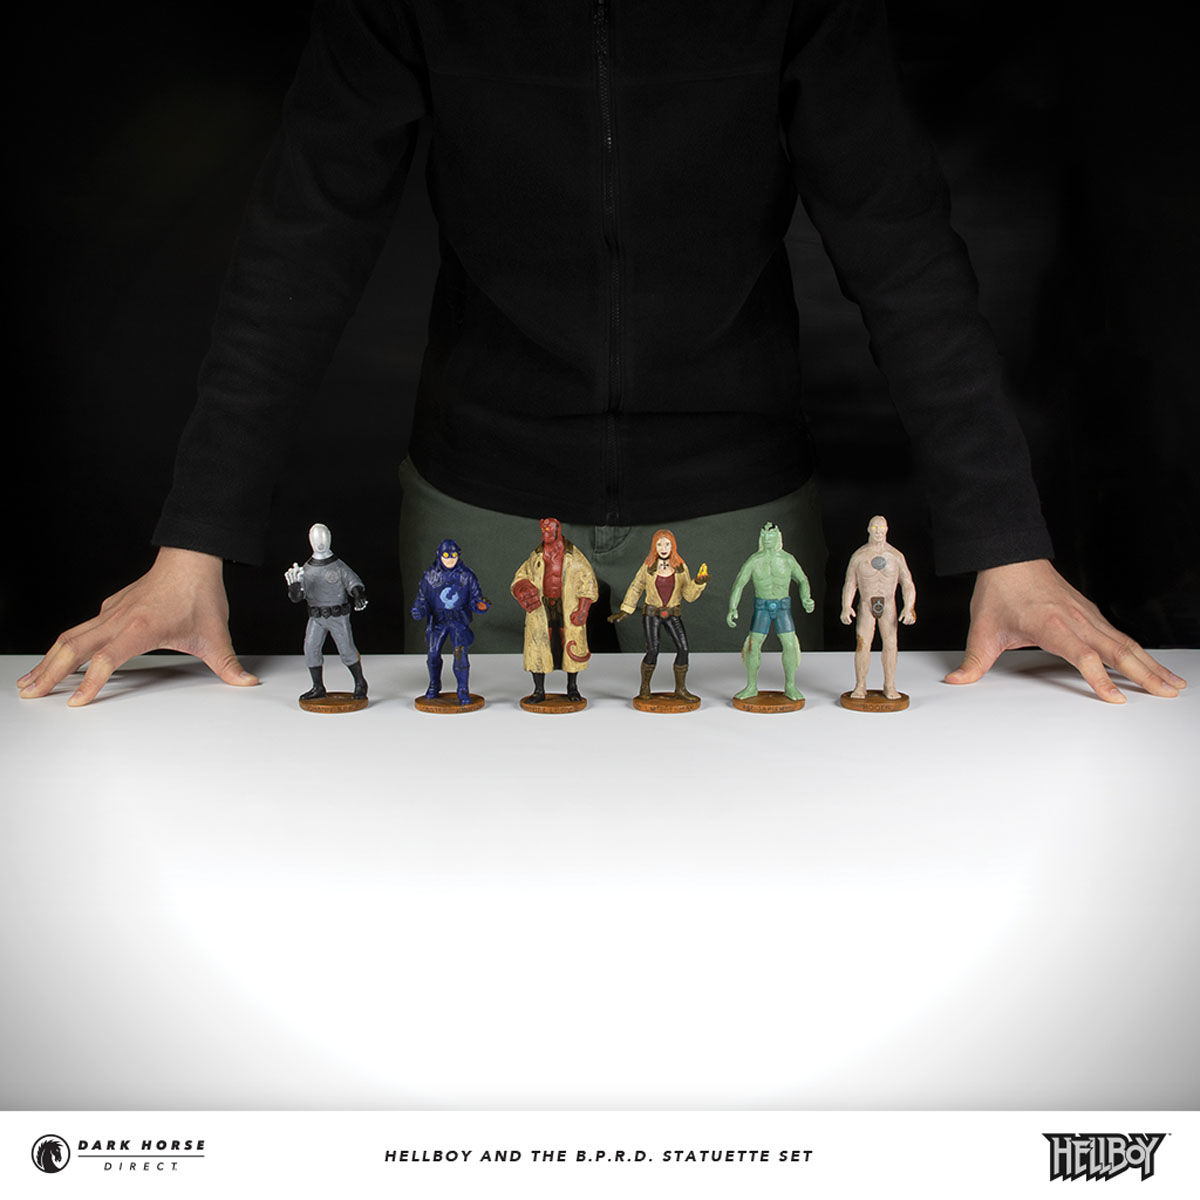 Hellboy and the B.D.P.D. Statuette Set 2